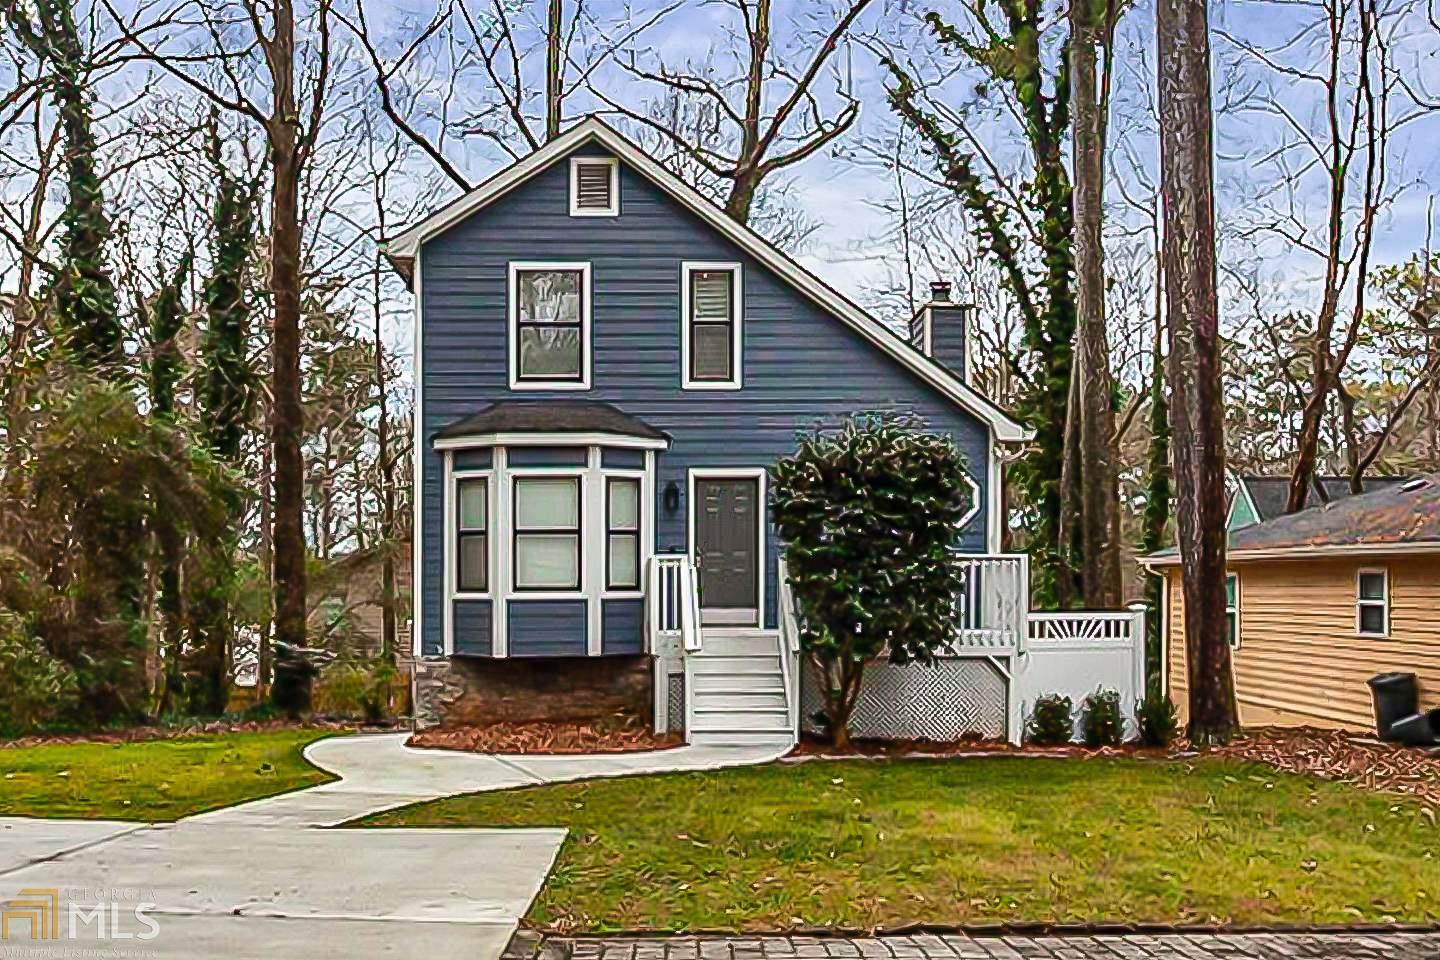 4305 Cary, Snellville, Georgia 30039, 3 Bedrooms Bedrooms, ,2 BathroomsBathrooms,Single Family,For Sale,4305 Cary,2,8919227